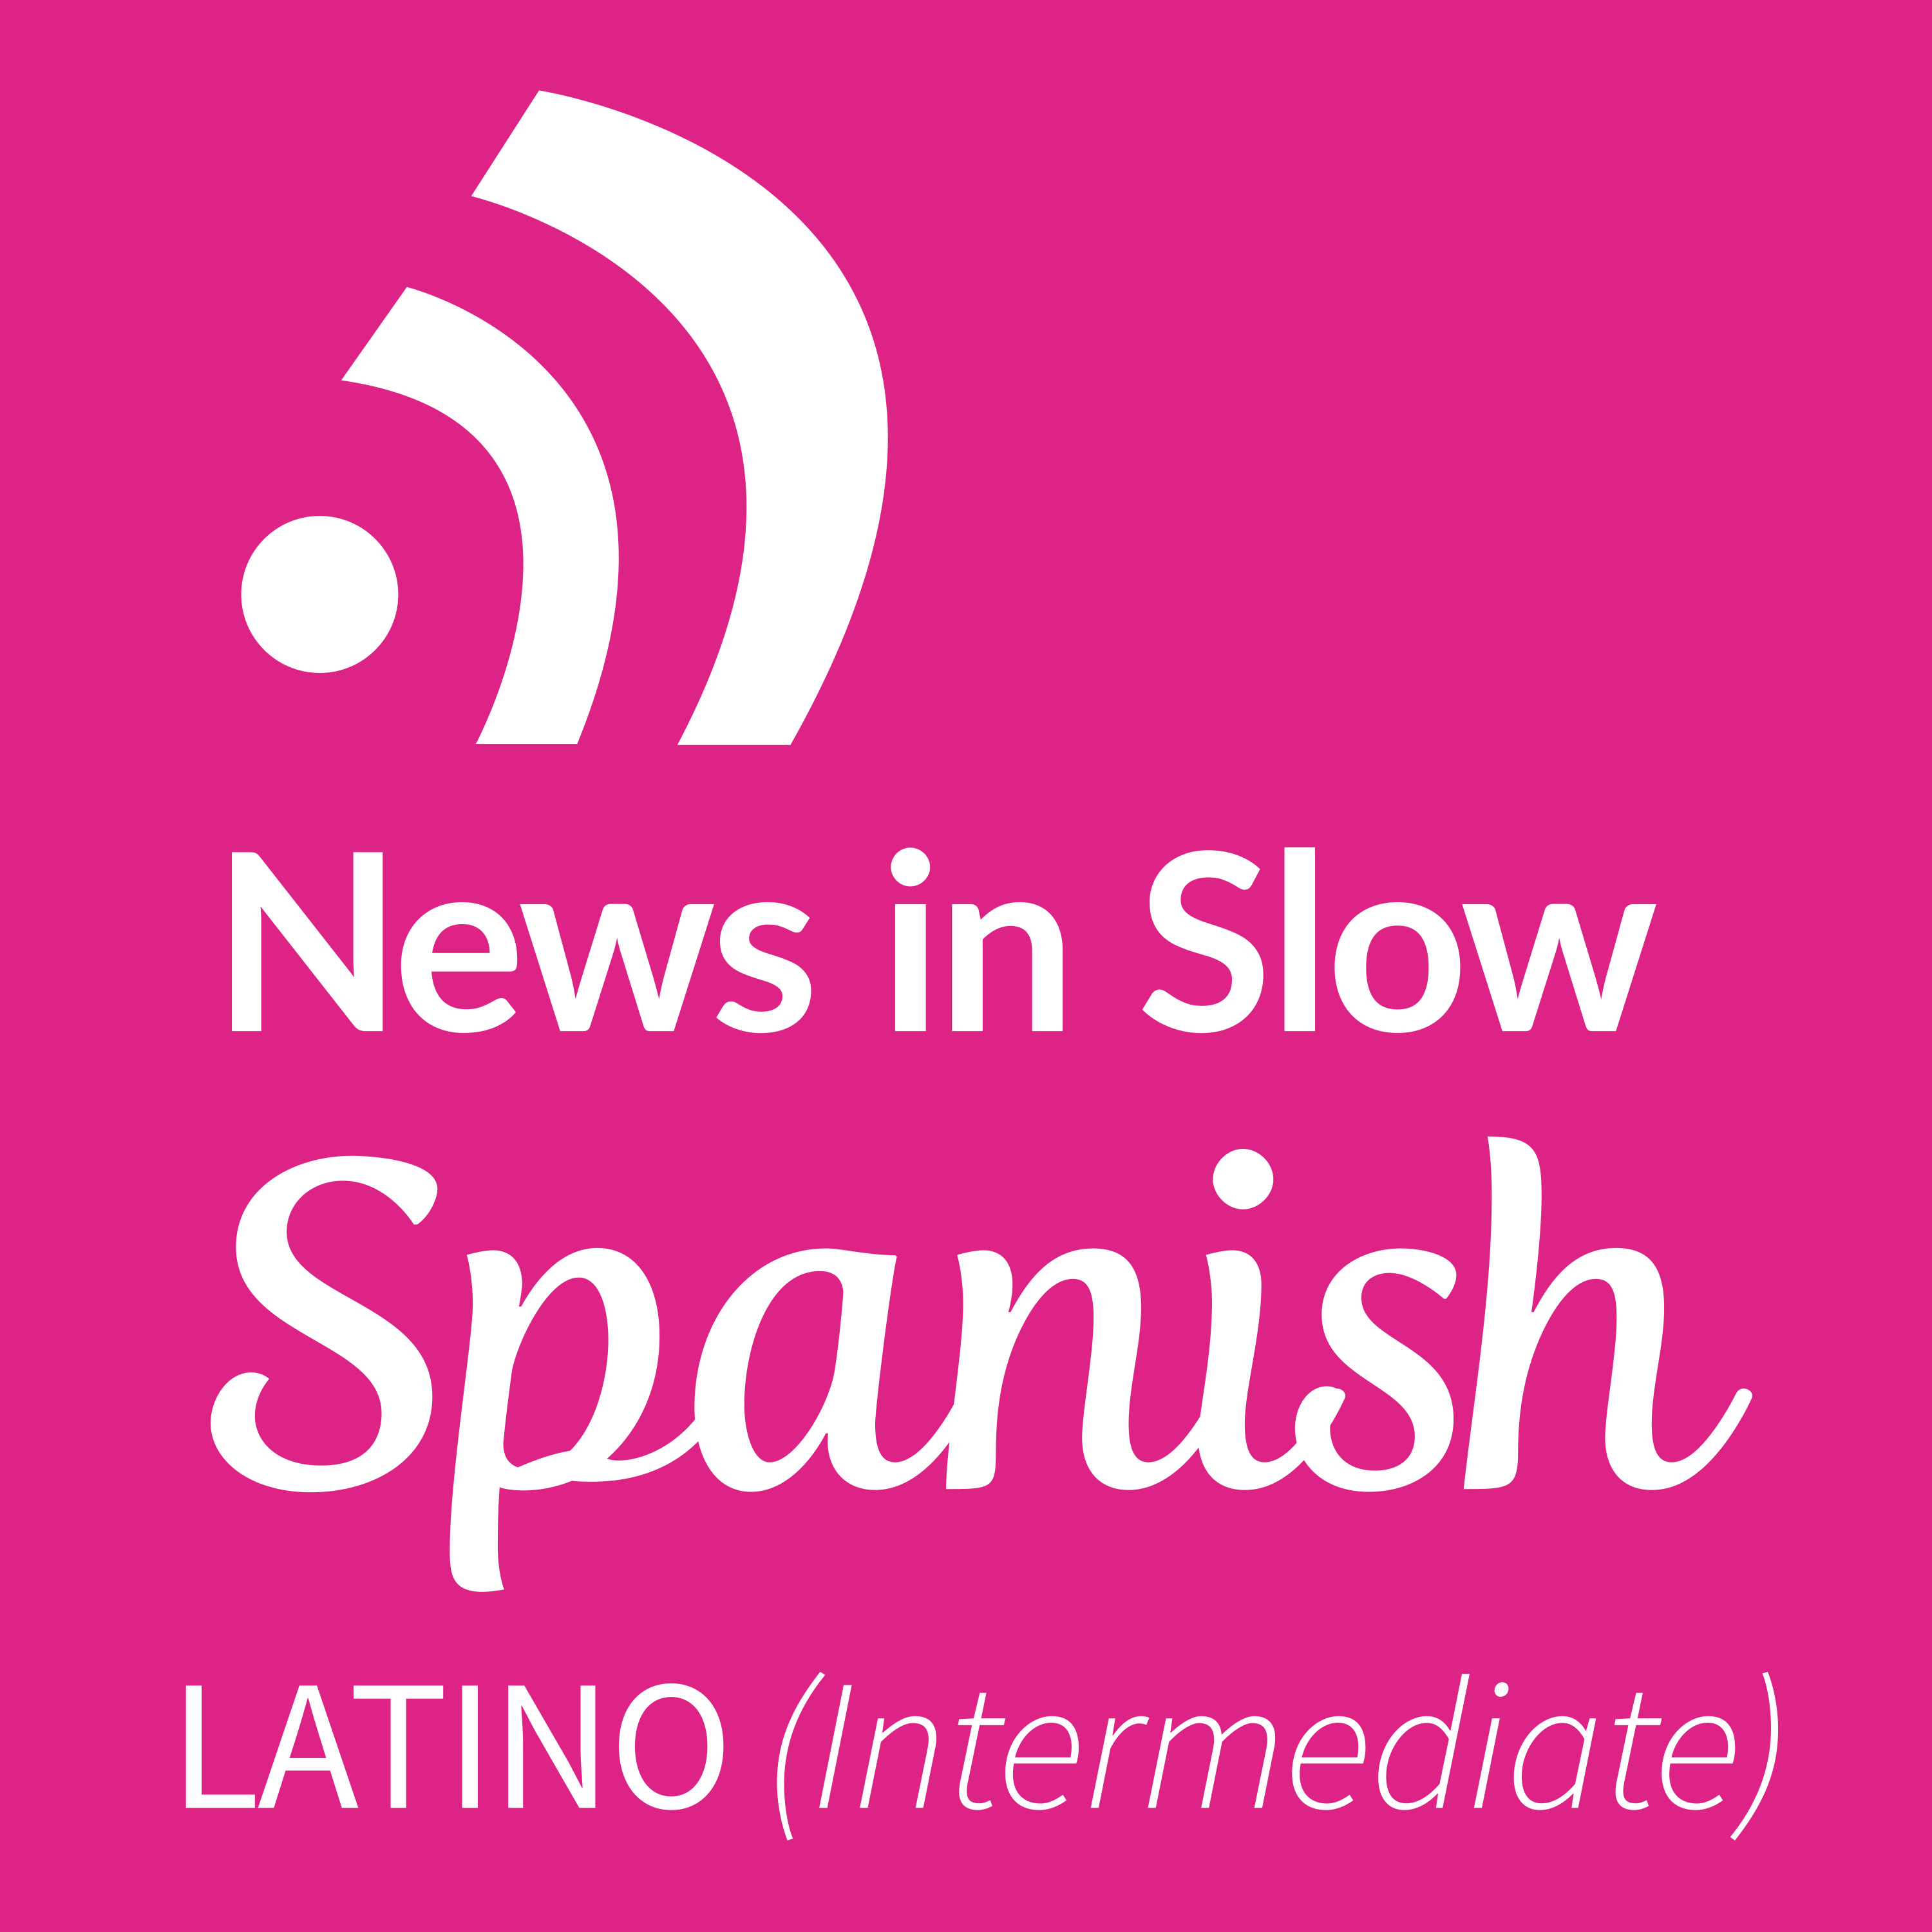 News in Slow Spanish Latino - # 176 - Learn Spanish through current events